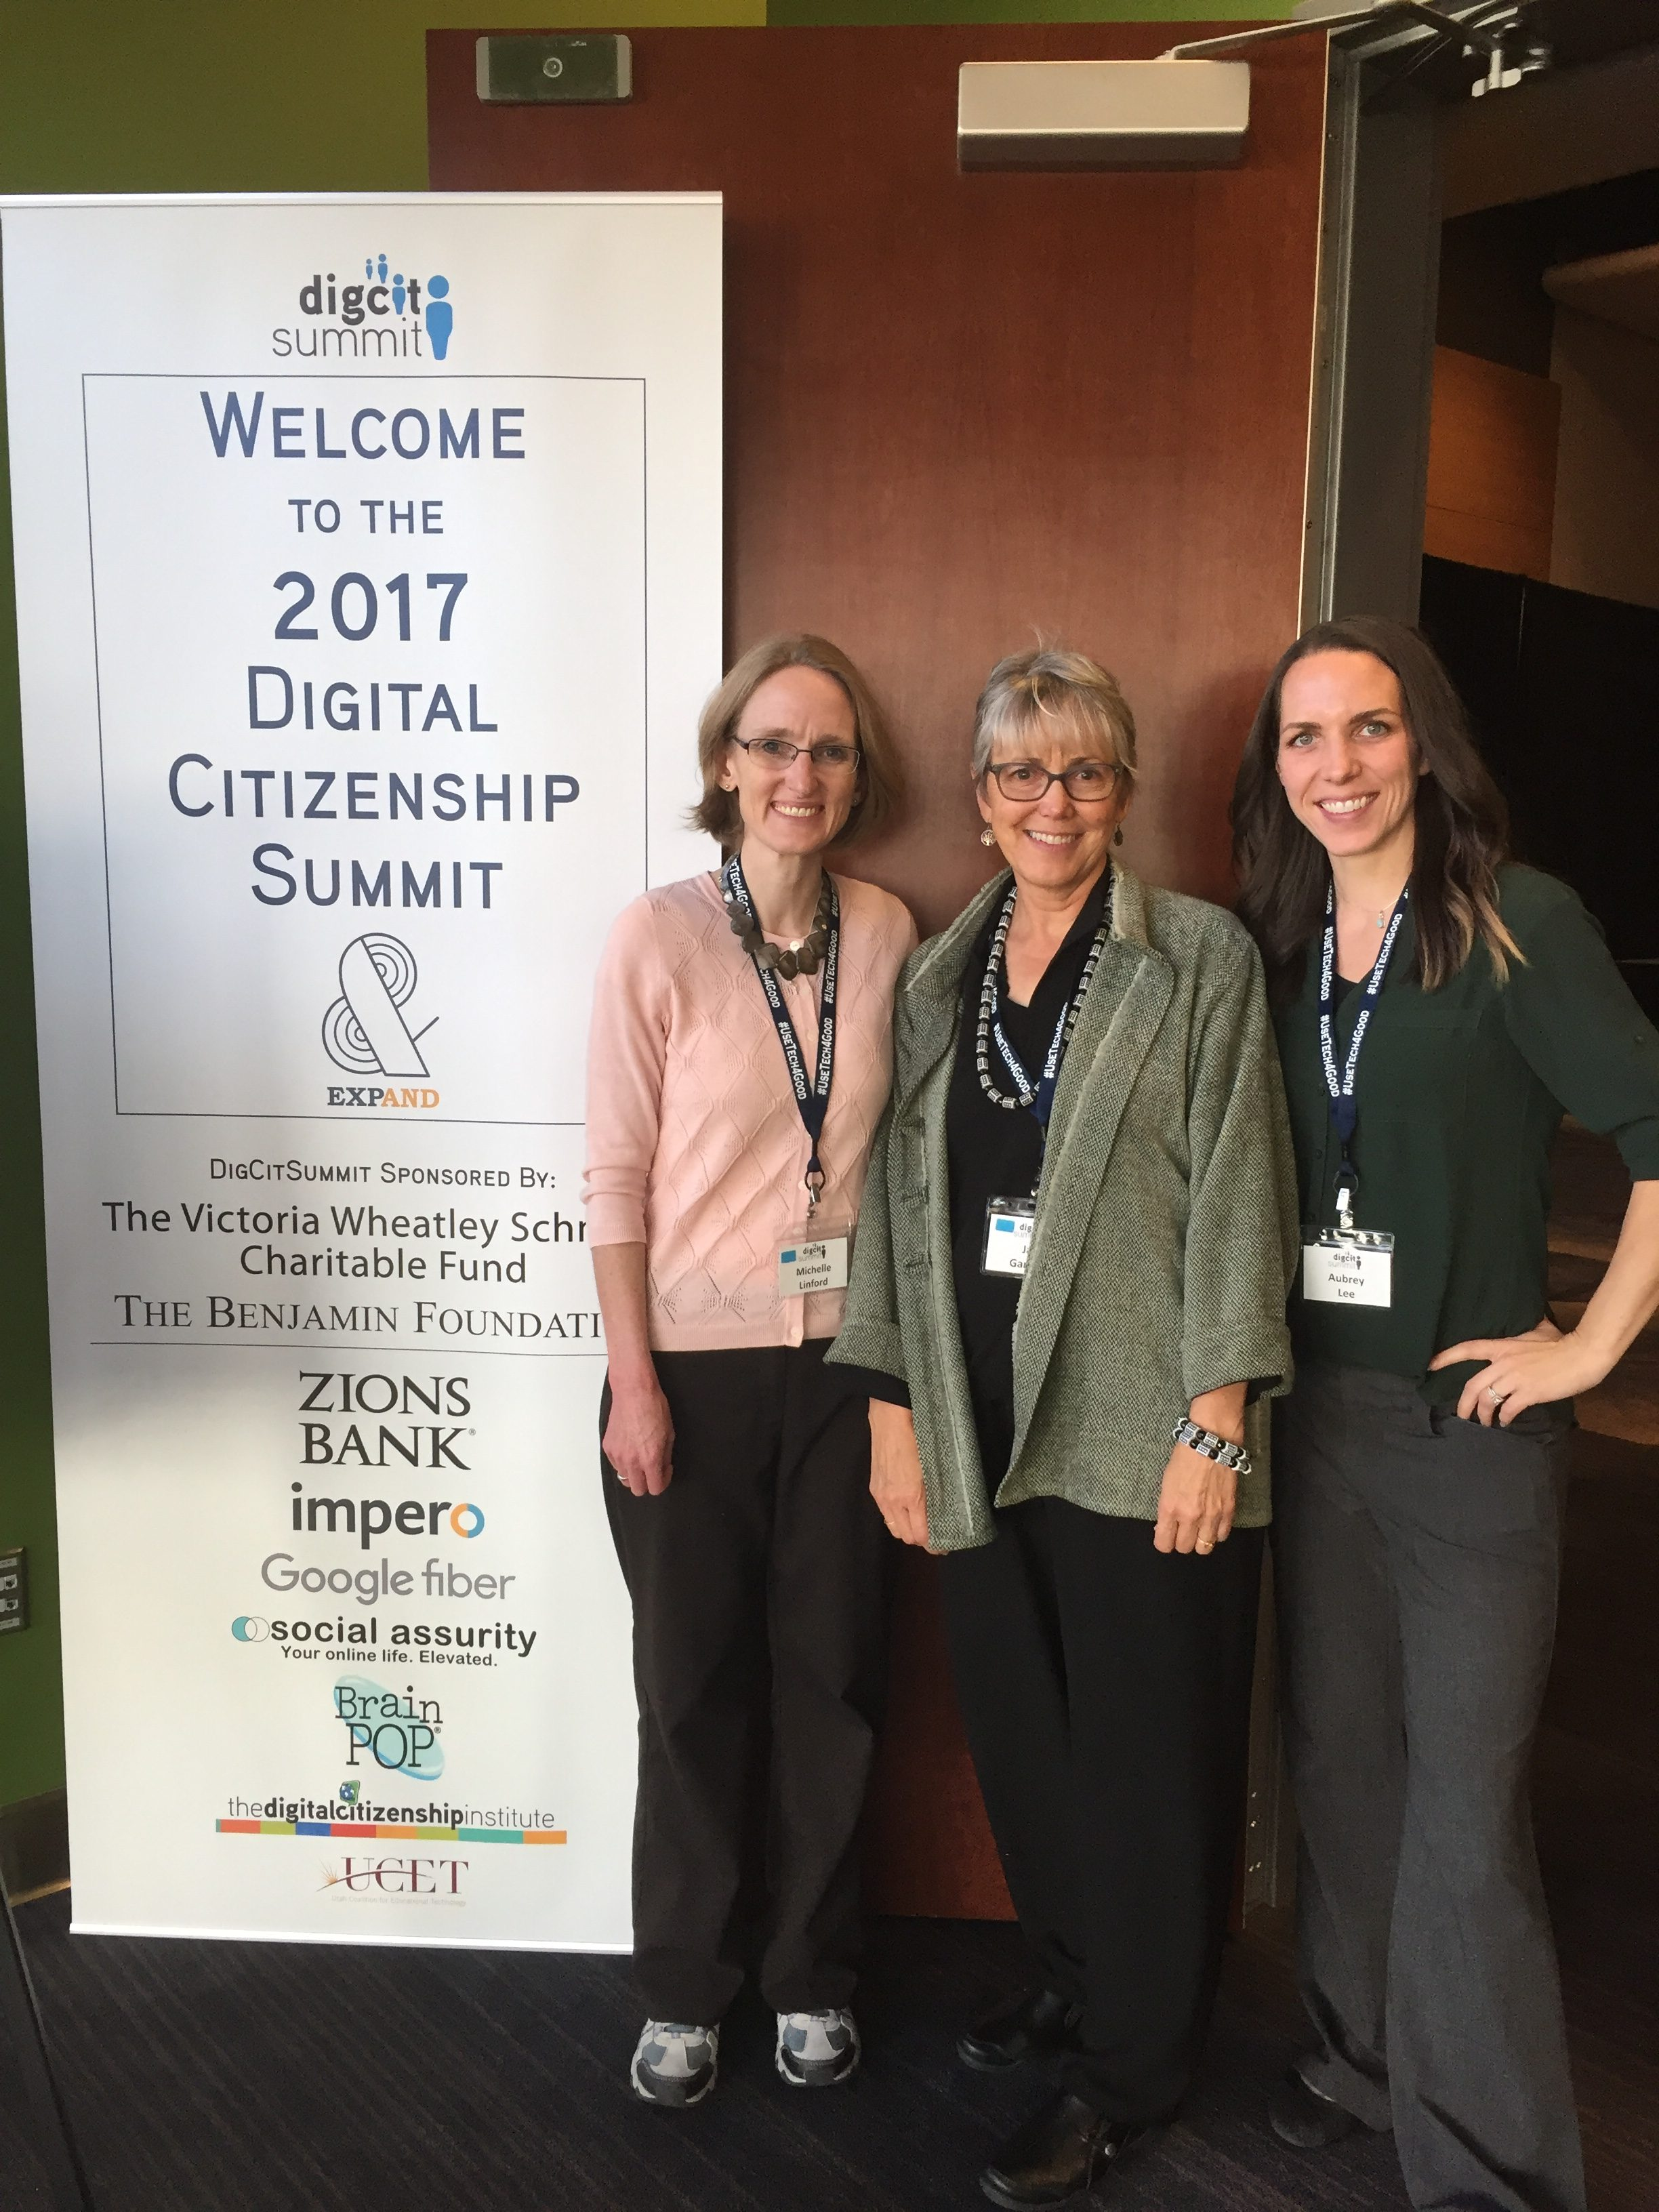 DIGCIT technology conference